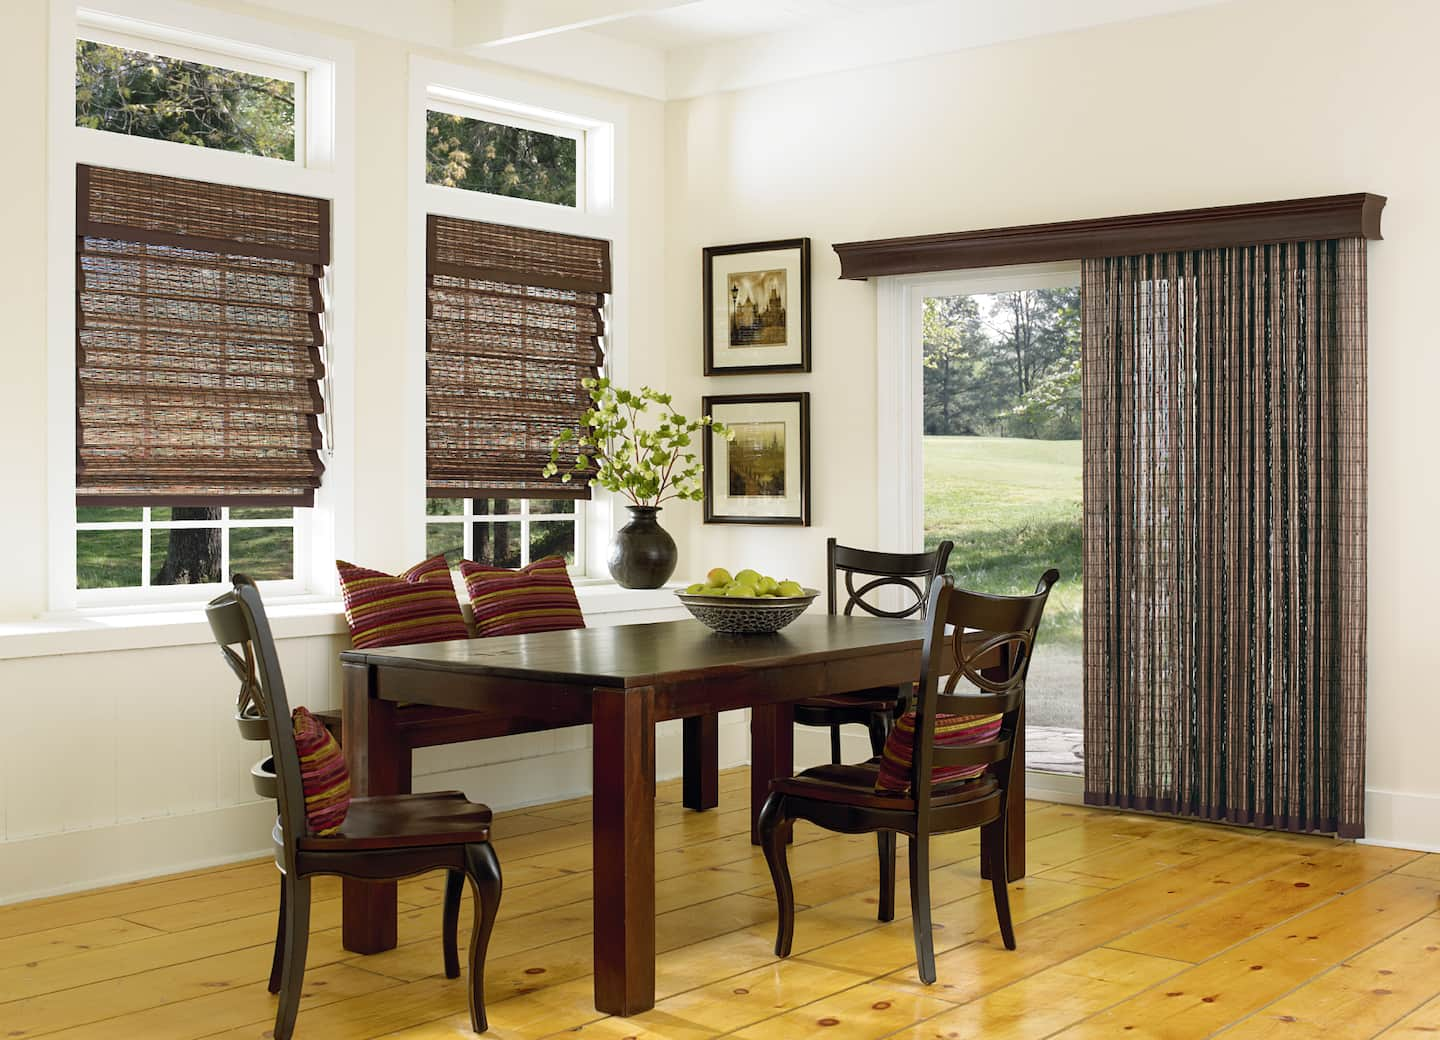 Dining Room Curtain Ideas Part - 25: Contemporary Dining Room With Woven Wood Shades, Woven Wood Vertical Shade  With Cornice Box,